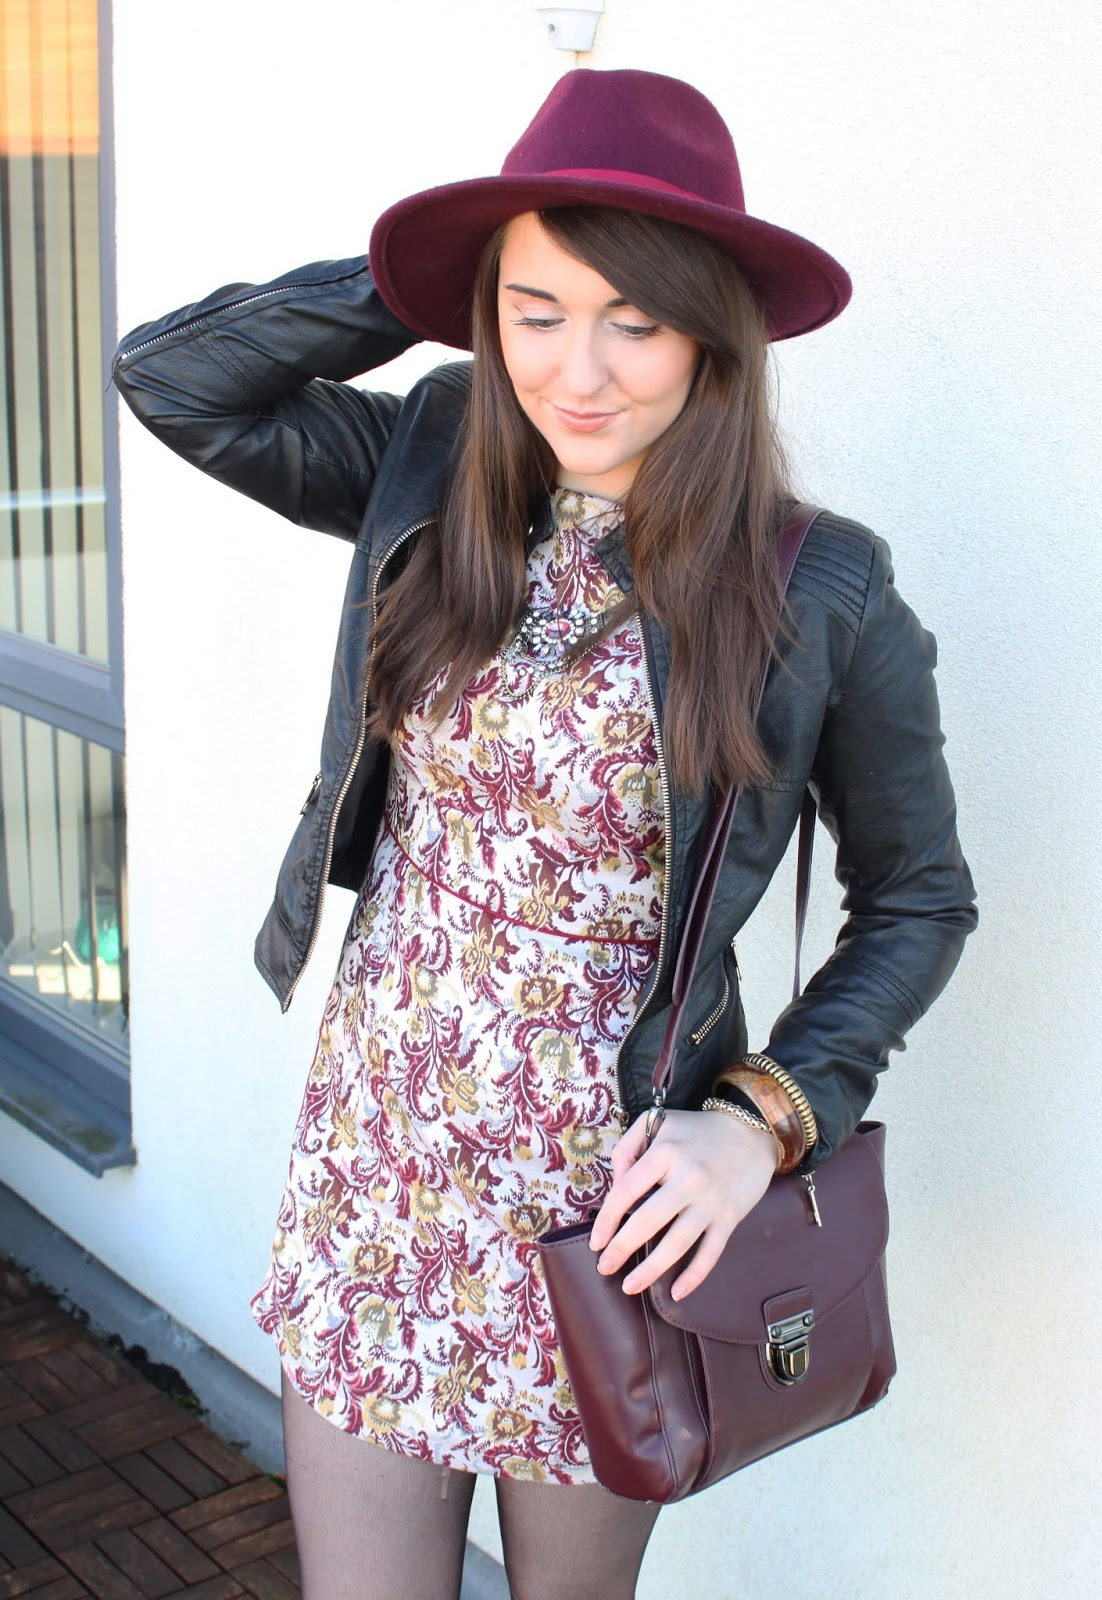 close-up-tapestry-dress-leather-jacket-red-fedora-hat